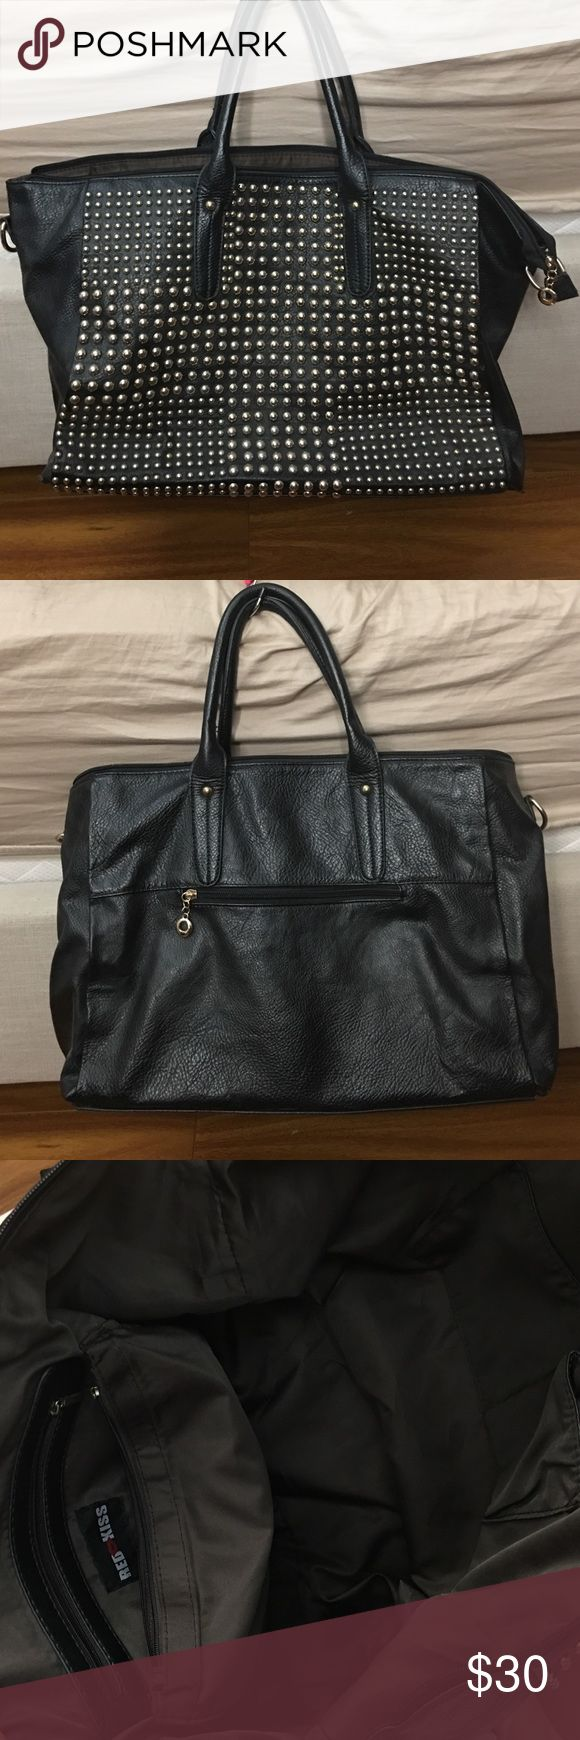 Black Leather Studded Bag Pre-owned black faux leather studded bag. Still in good condition. Can be use as a weekend bag. Rings on both sides for strap. Does not include strap. Bags Travel Bags